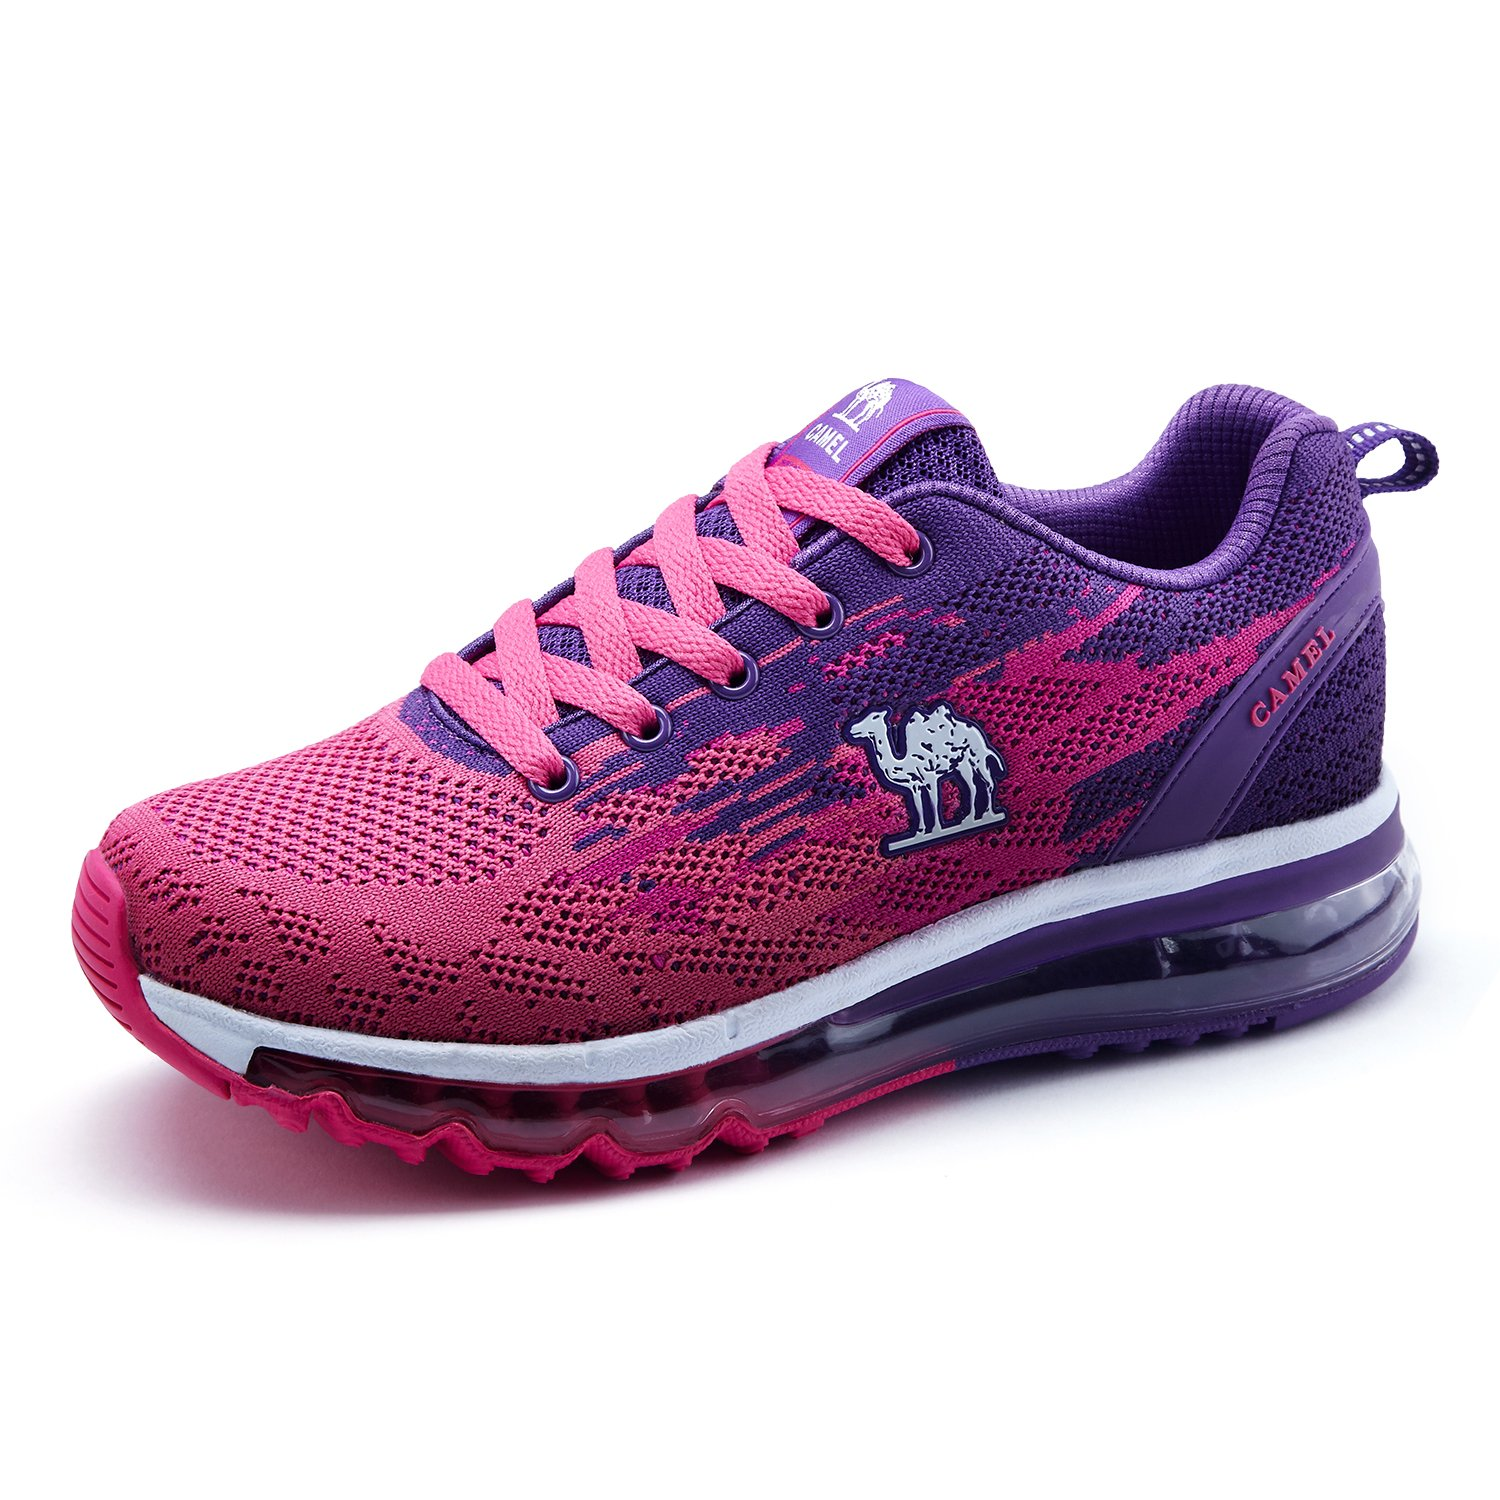 Camel Women's Fashion Sneakers Outdoor Lace-up Trail Running Shoes with Air Cushion Lightweight Breathable B0786NMJ1H 5.5D(M)US|Purple